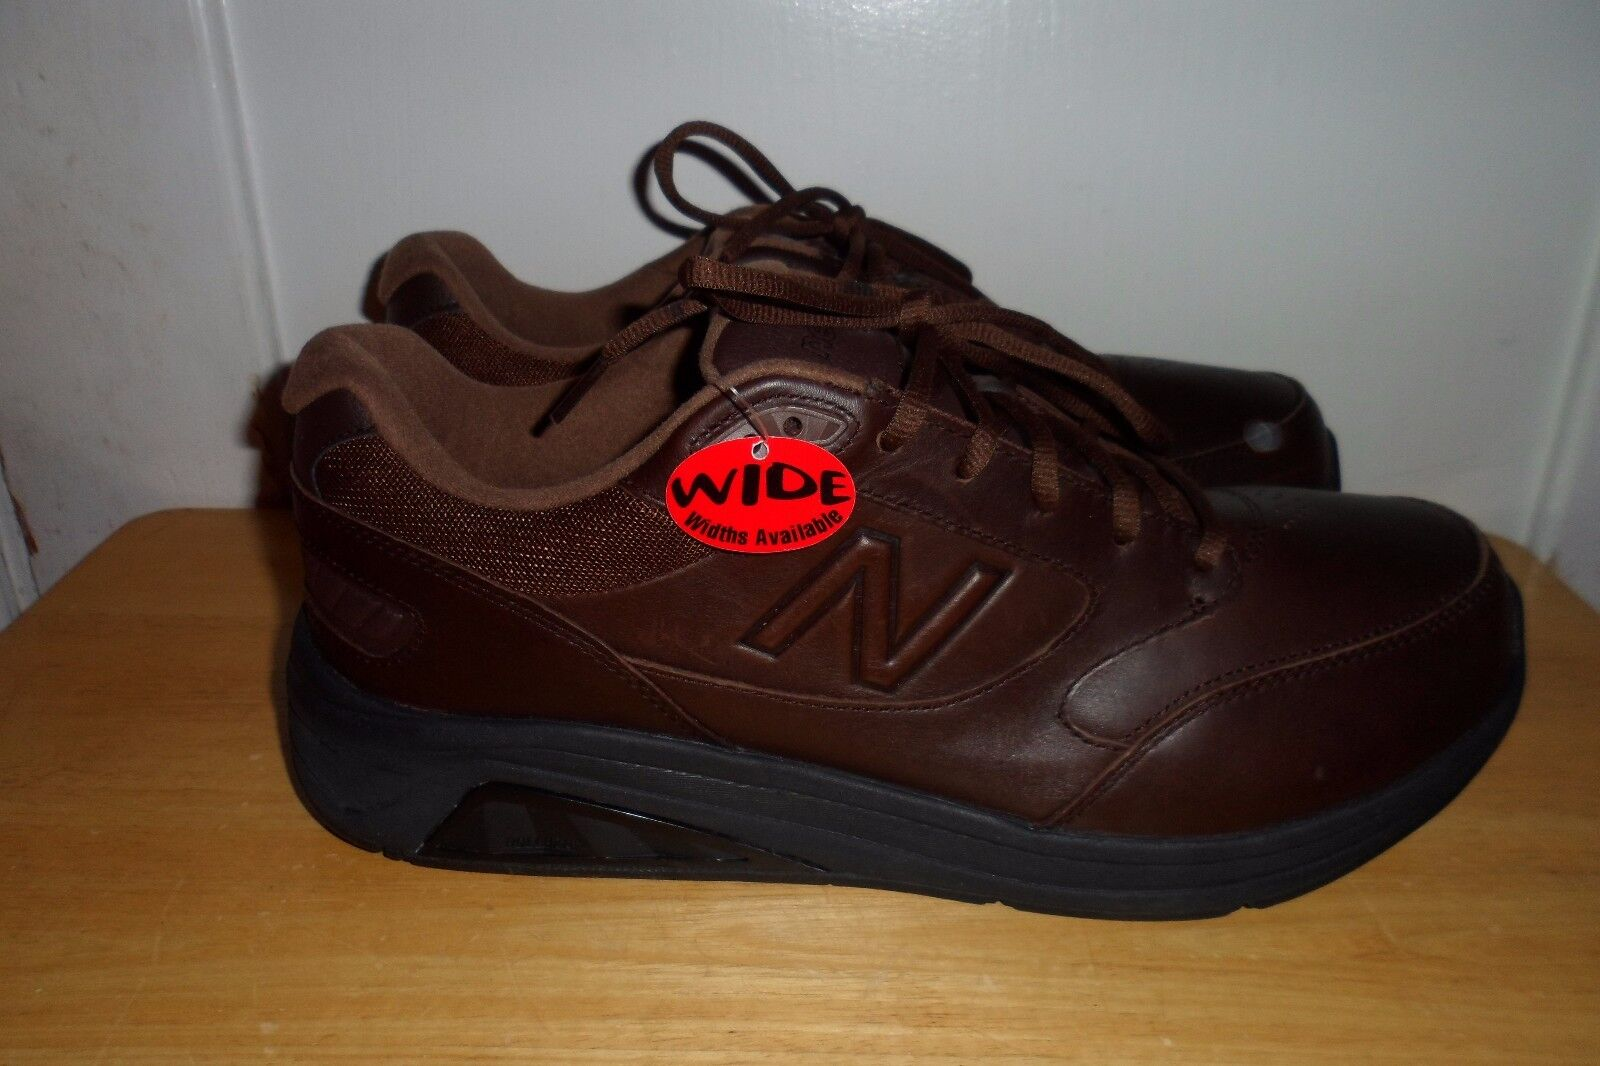 MUST SEE NWT  139.99 NEW BALANCE 928v2 MW928BR2 WALKING SHOES BROWN 9 6E